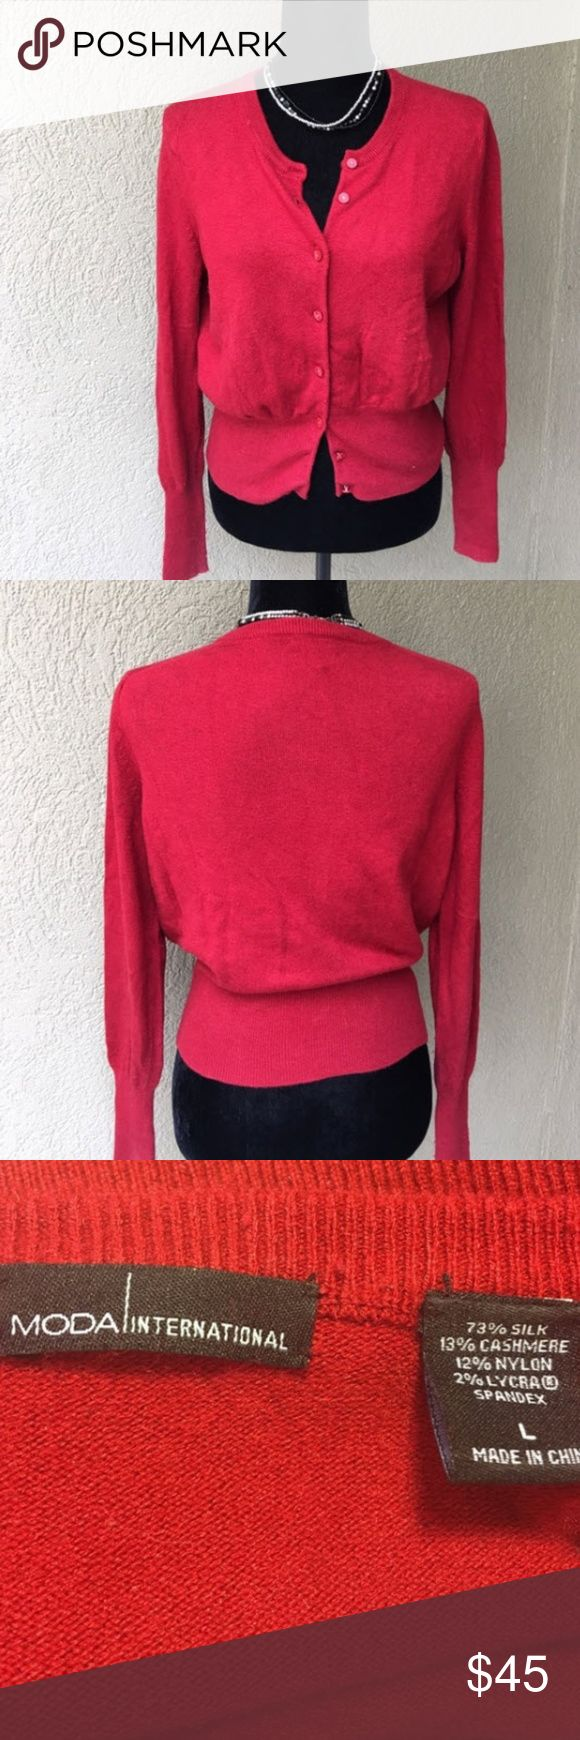 "Moda International red Silk cashmere cardigan Moda International Silk cashmere red cardigan sweater- sexy fit in great shape besides minor pilling under the arms which can be remedied with a sweater shaver. bust laying flat 21"" x length 21.5"" ✅I ship same or next day ✅Bundle for discount Moda International Sweaters Cardigans"